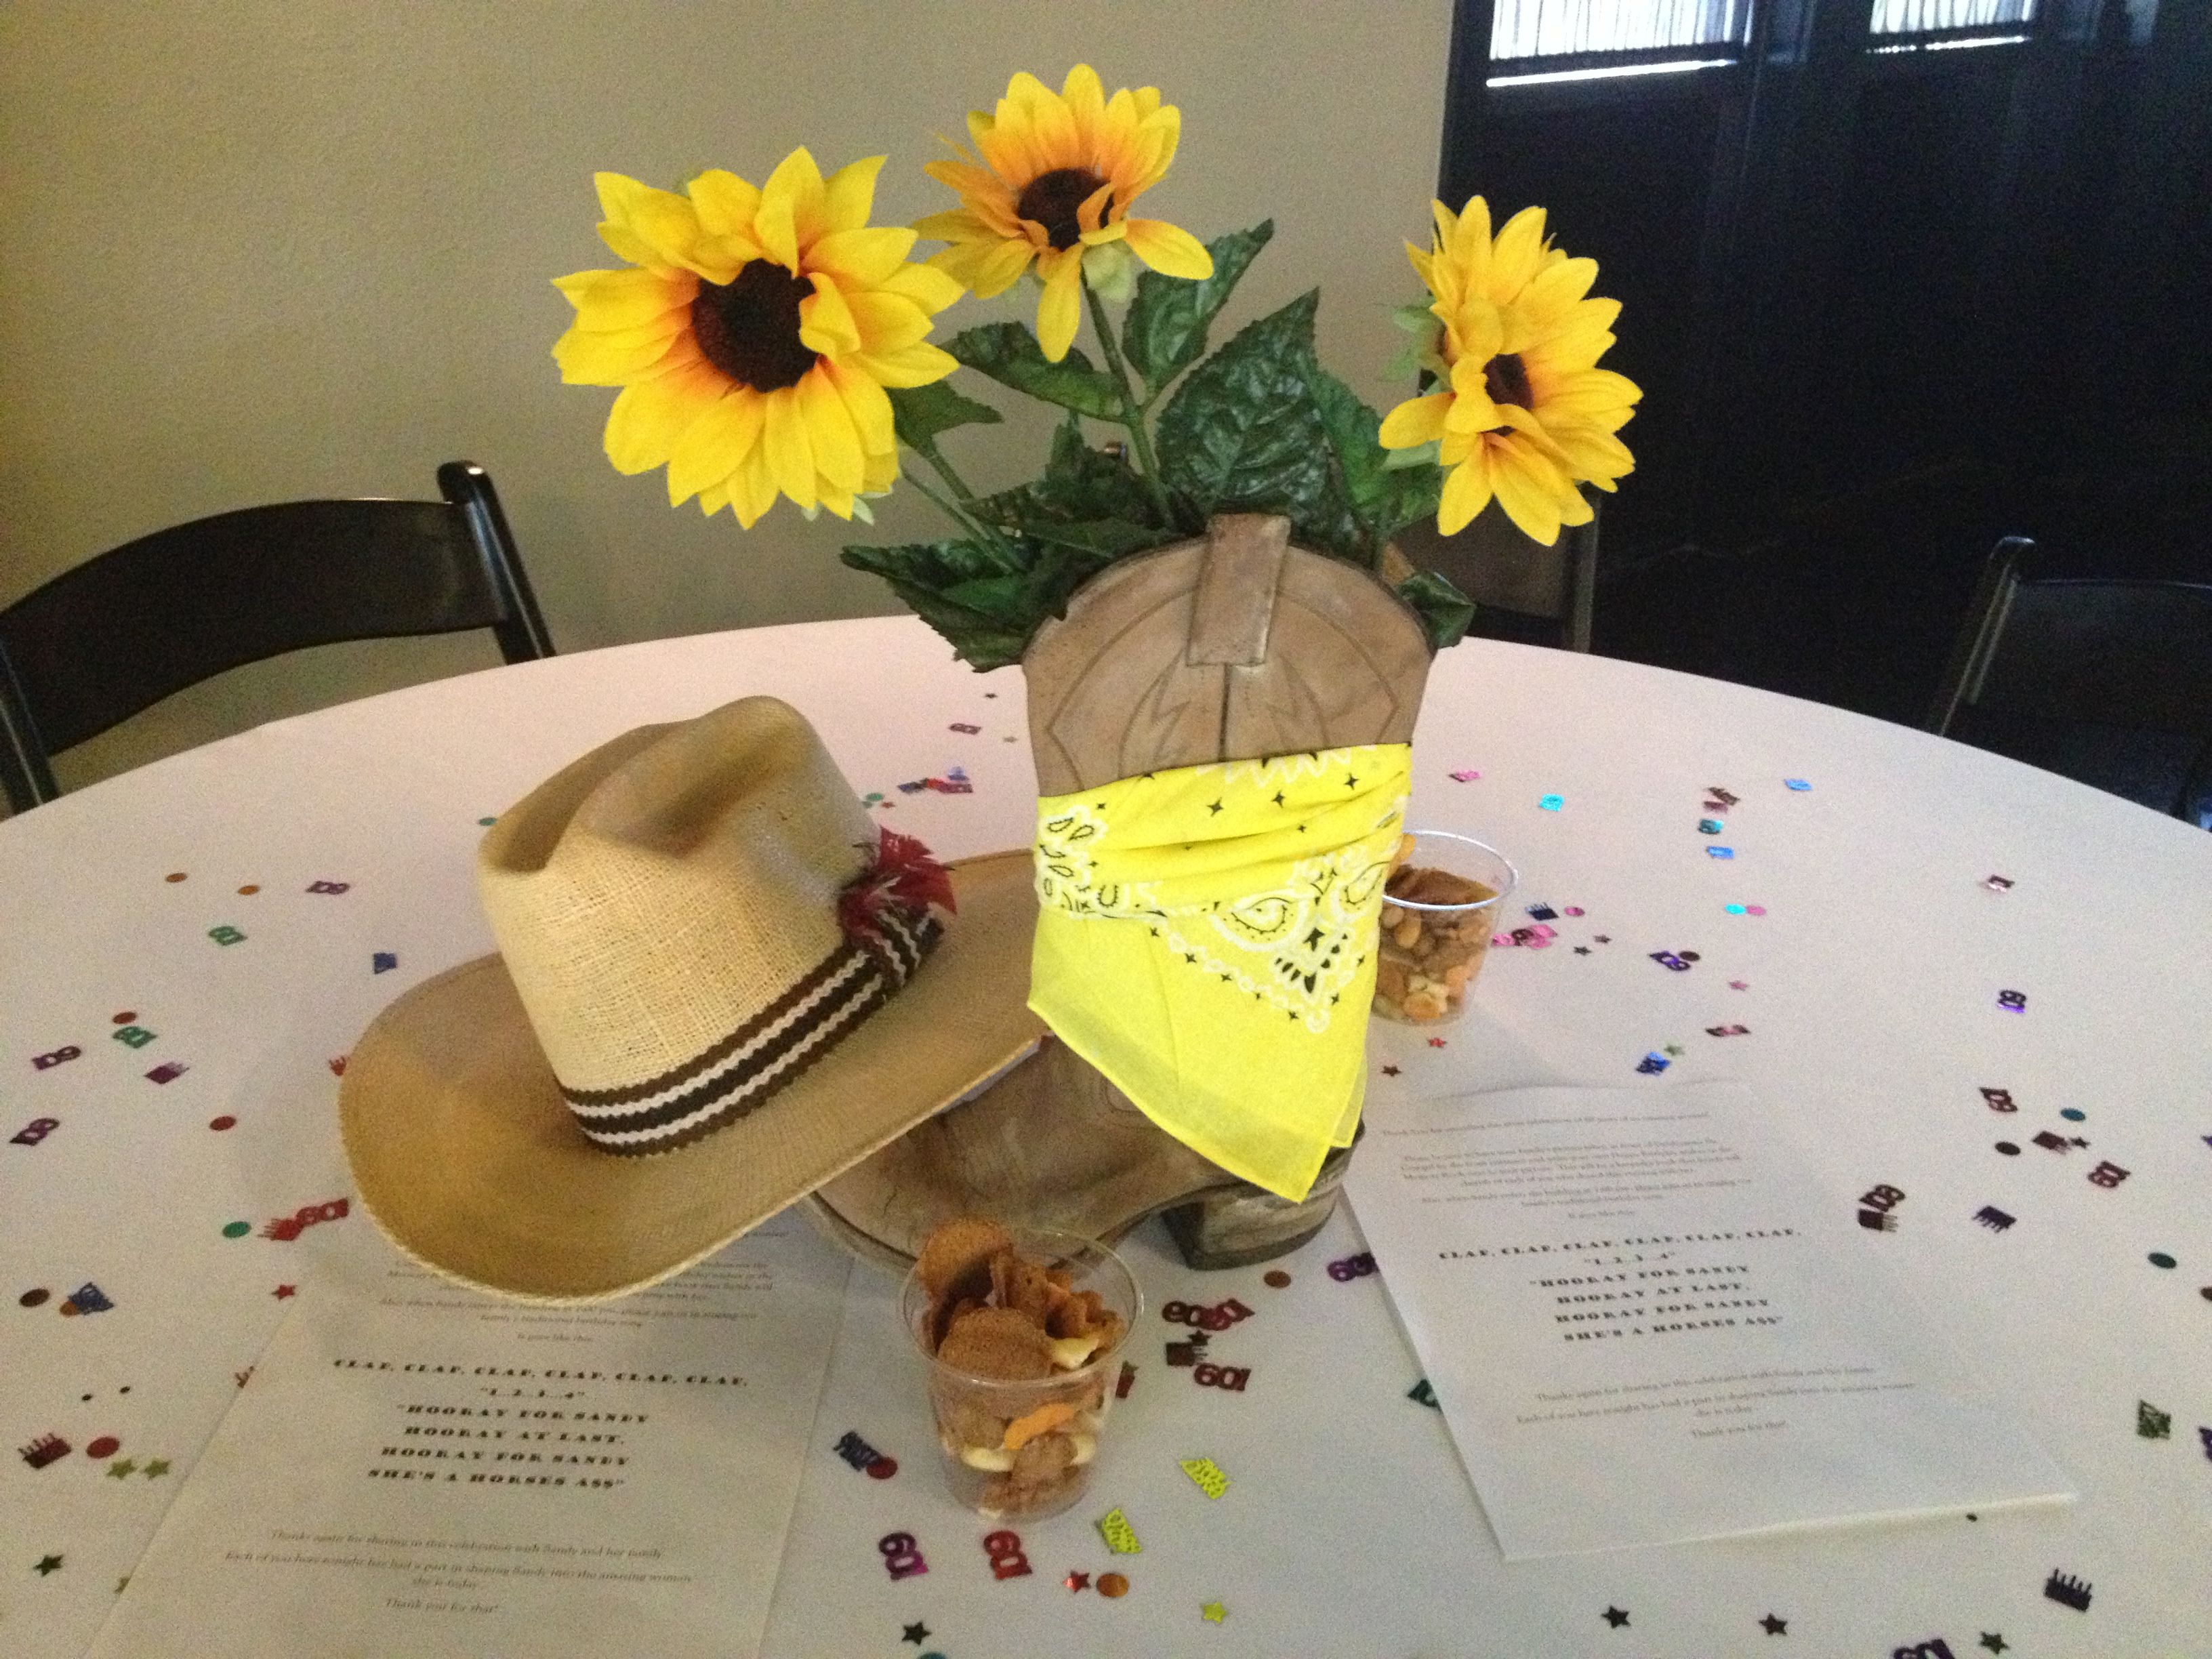 cab5406dd6fc9e Cow cowgirl centerpiece. Old boot, sunflowers, bandana, and cowboy ...